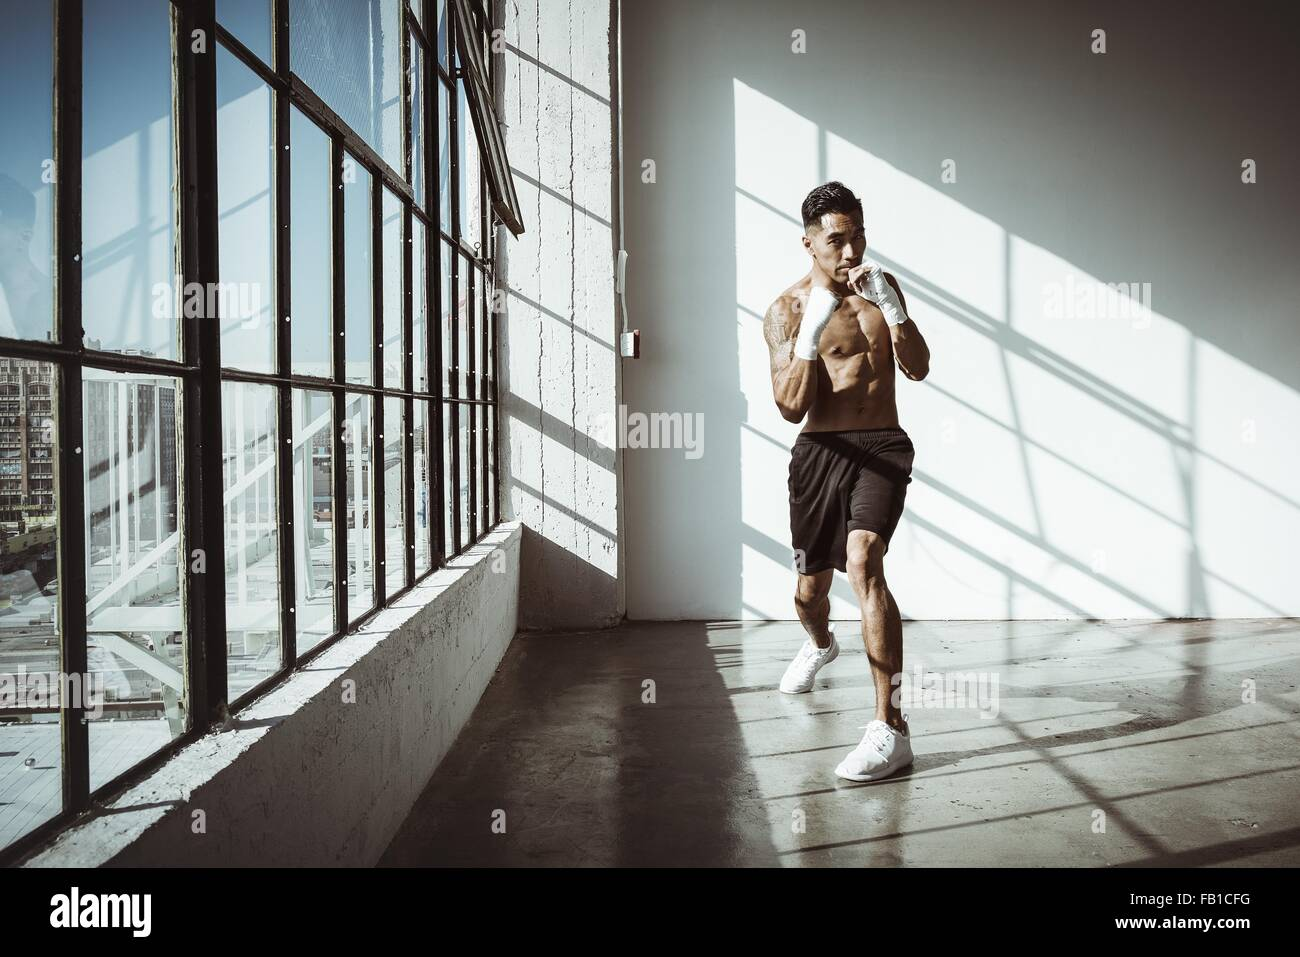 Full length front view of young man in gym in boxing stance looking at camera - Stock Image